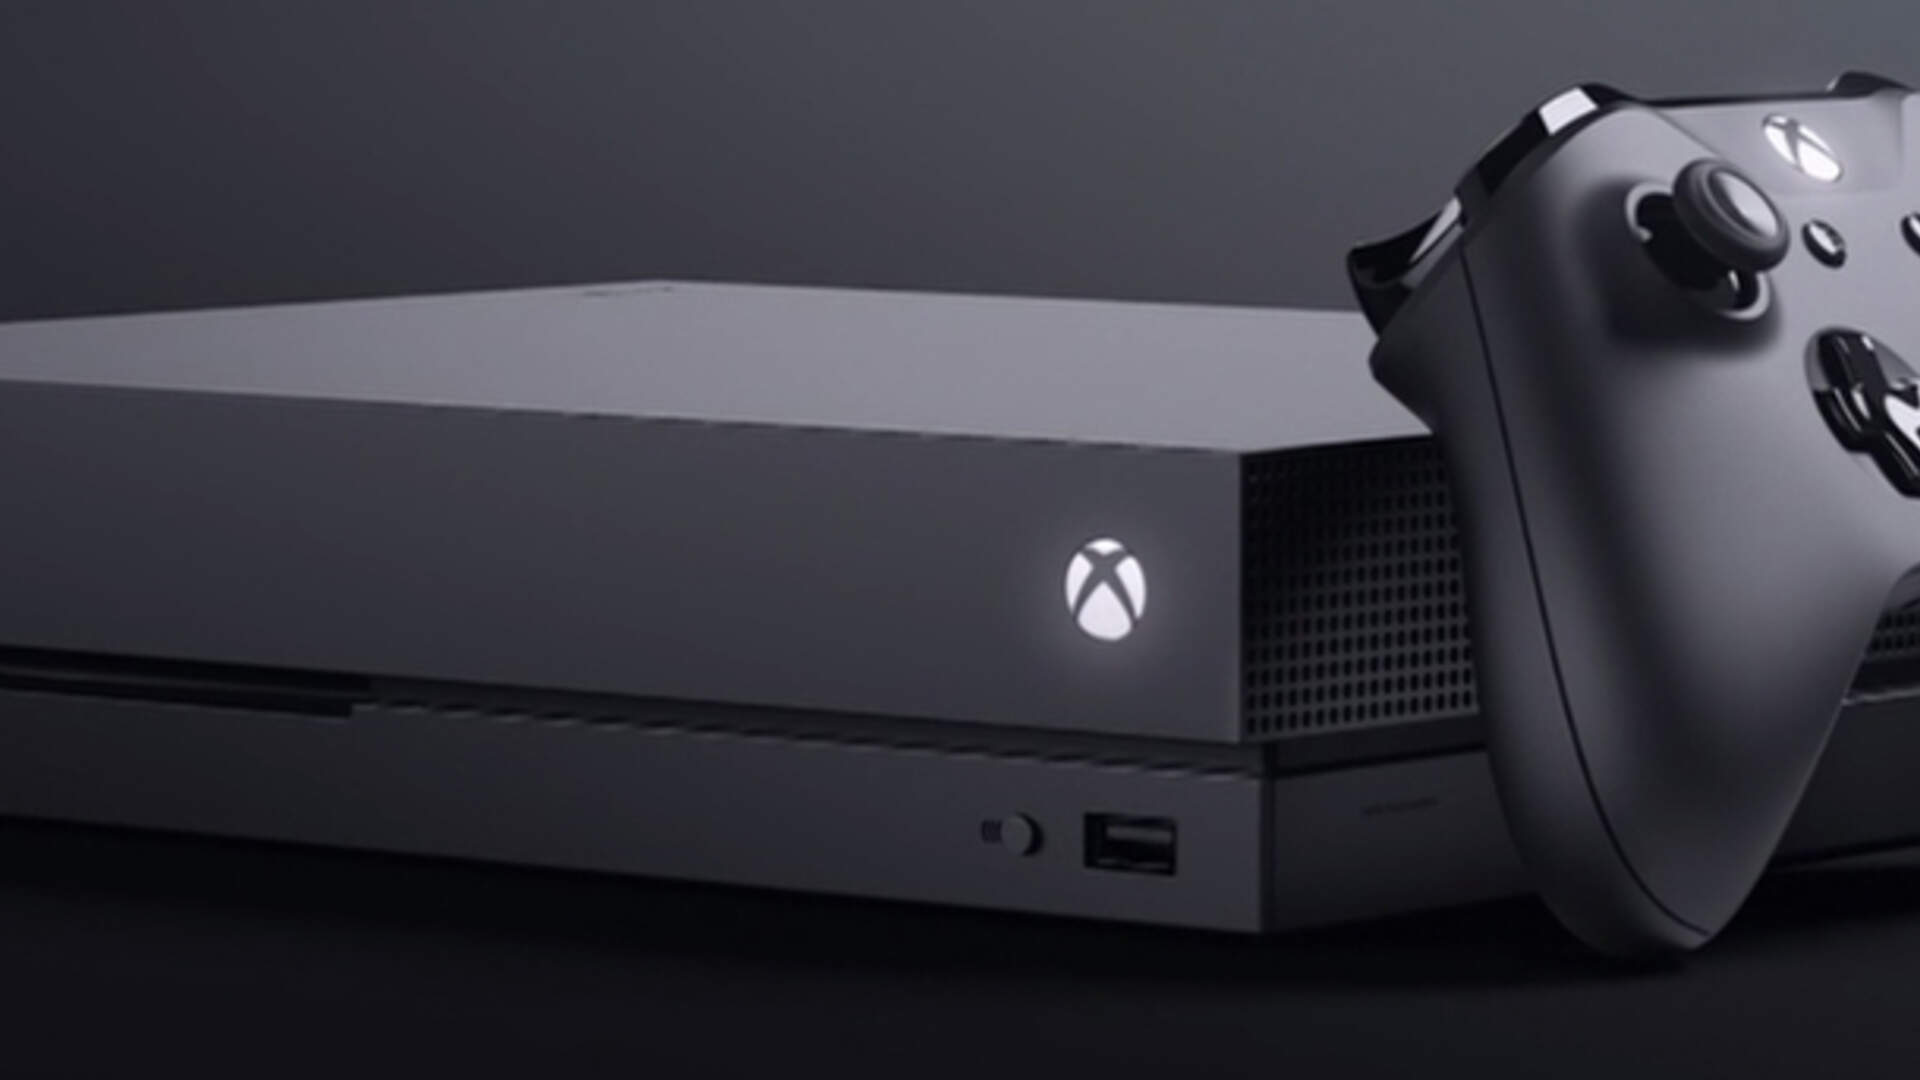 The Xbox One X Doesn't Have Nearly Enough Exclusives to Justify its $499 Price Tag